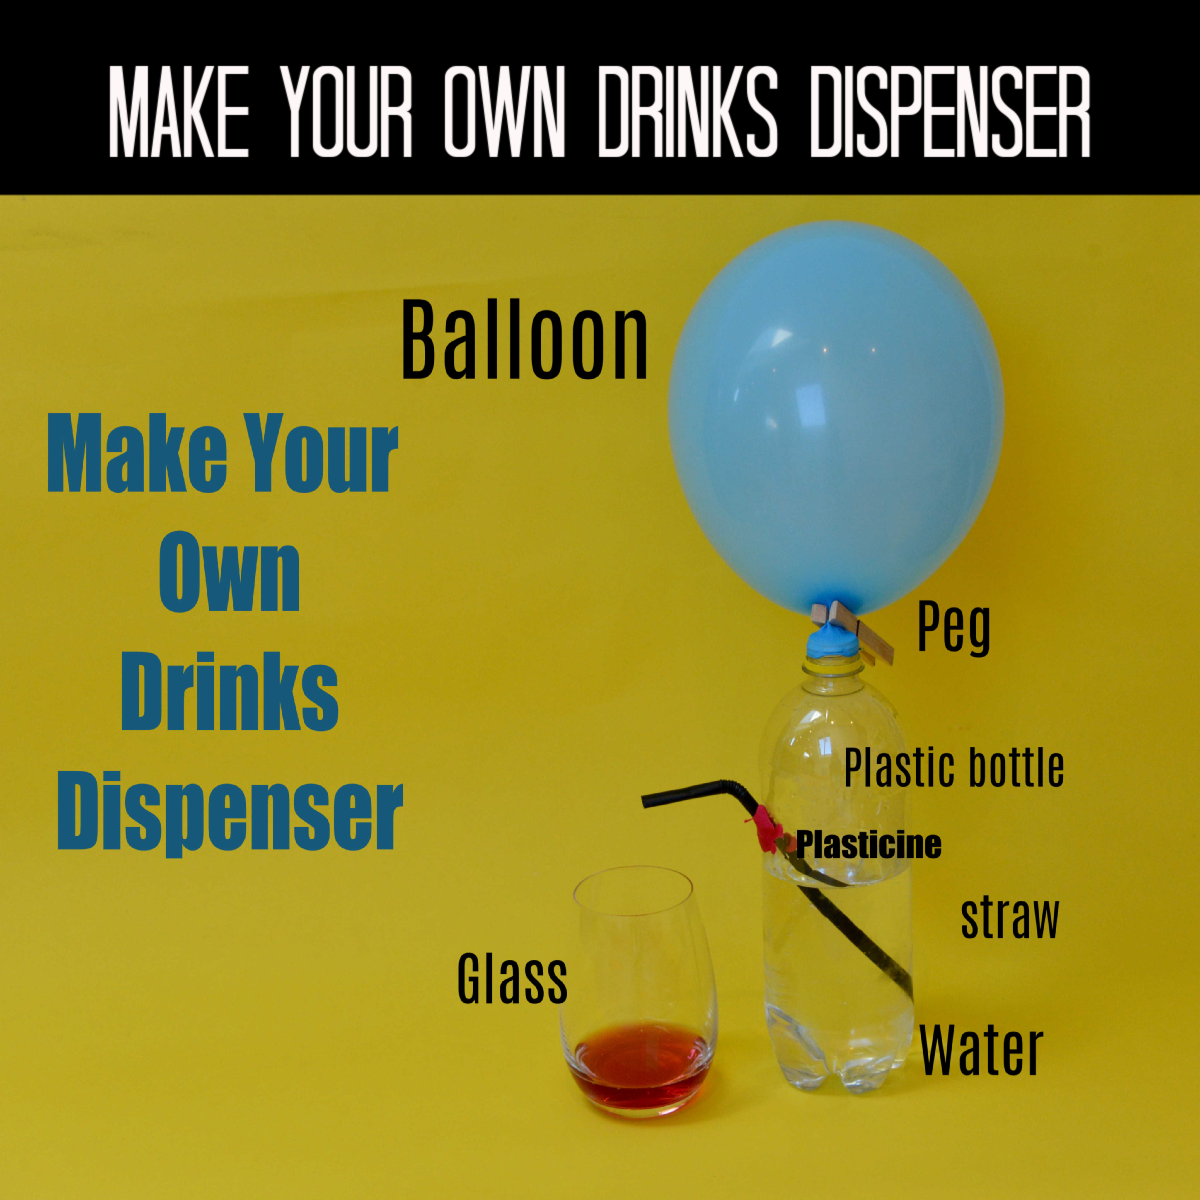 Make your own drinks dispenser